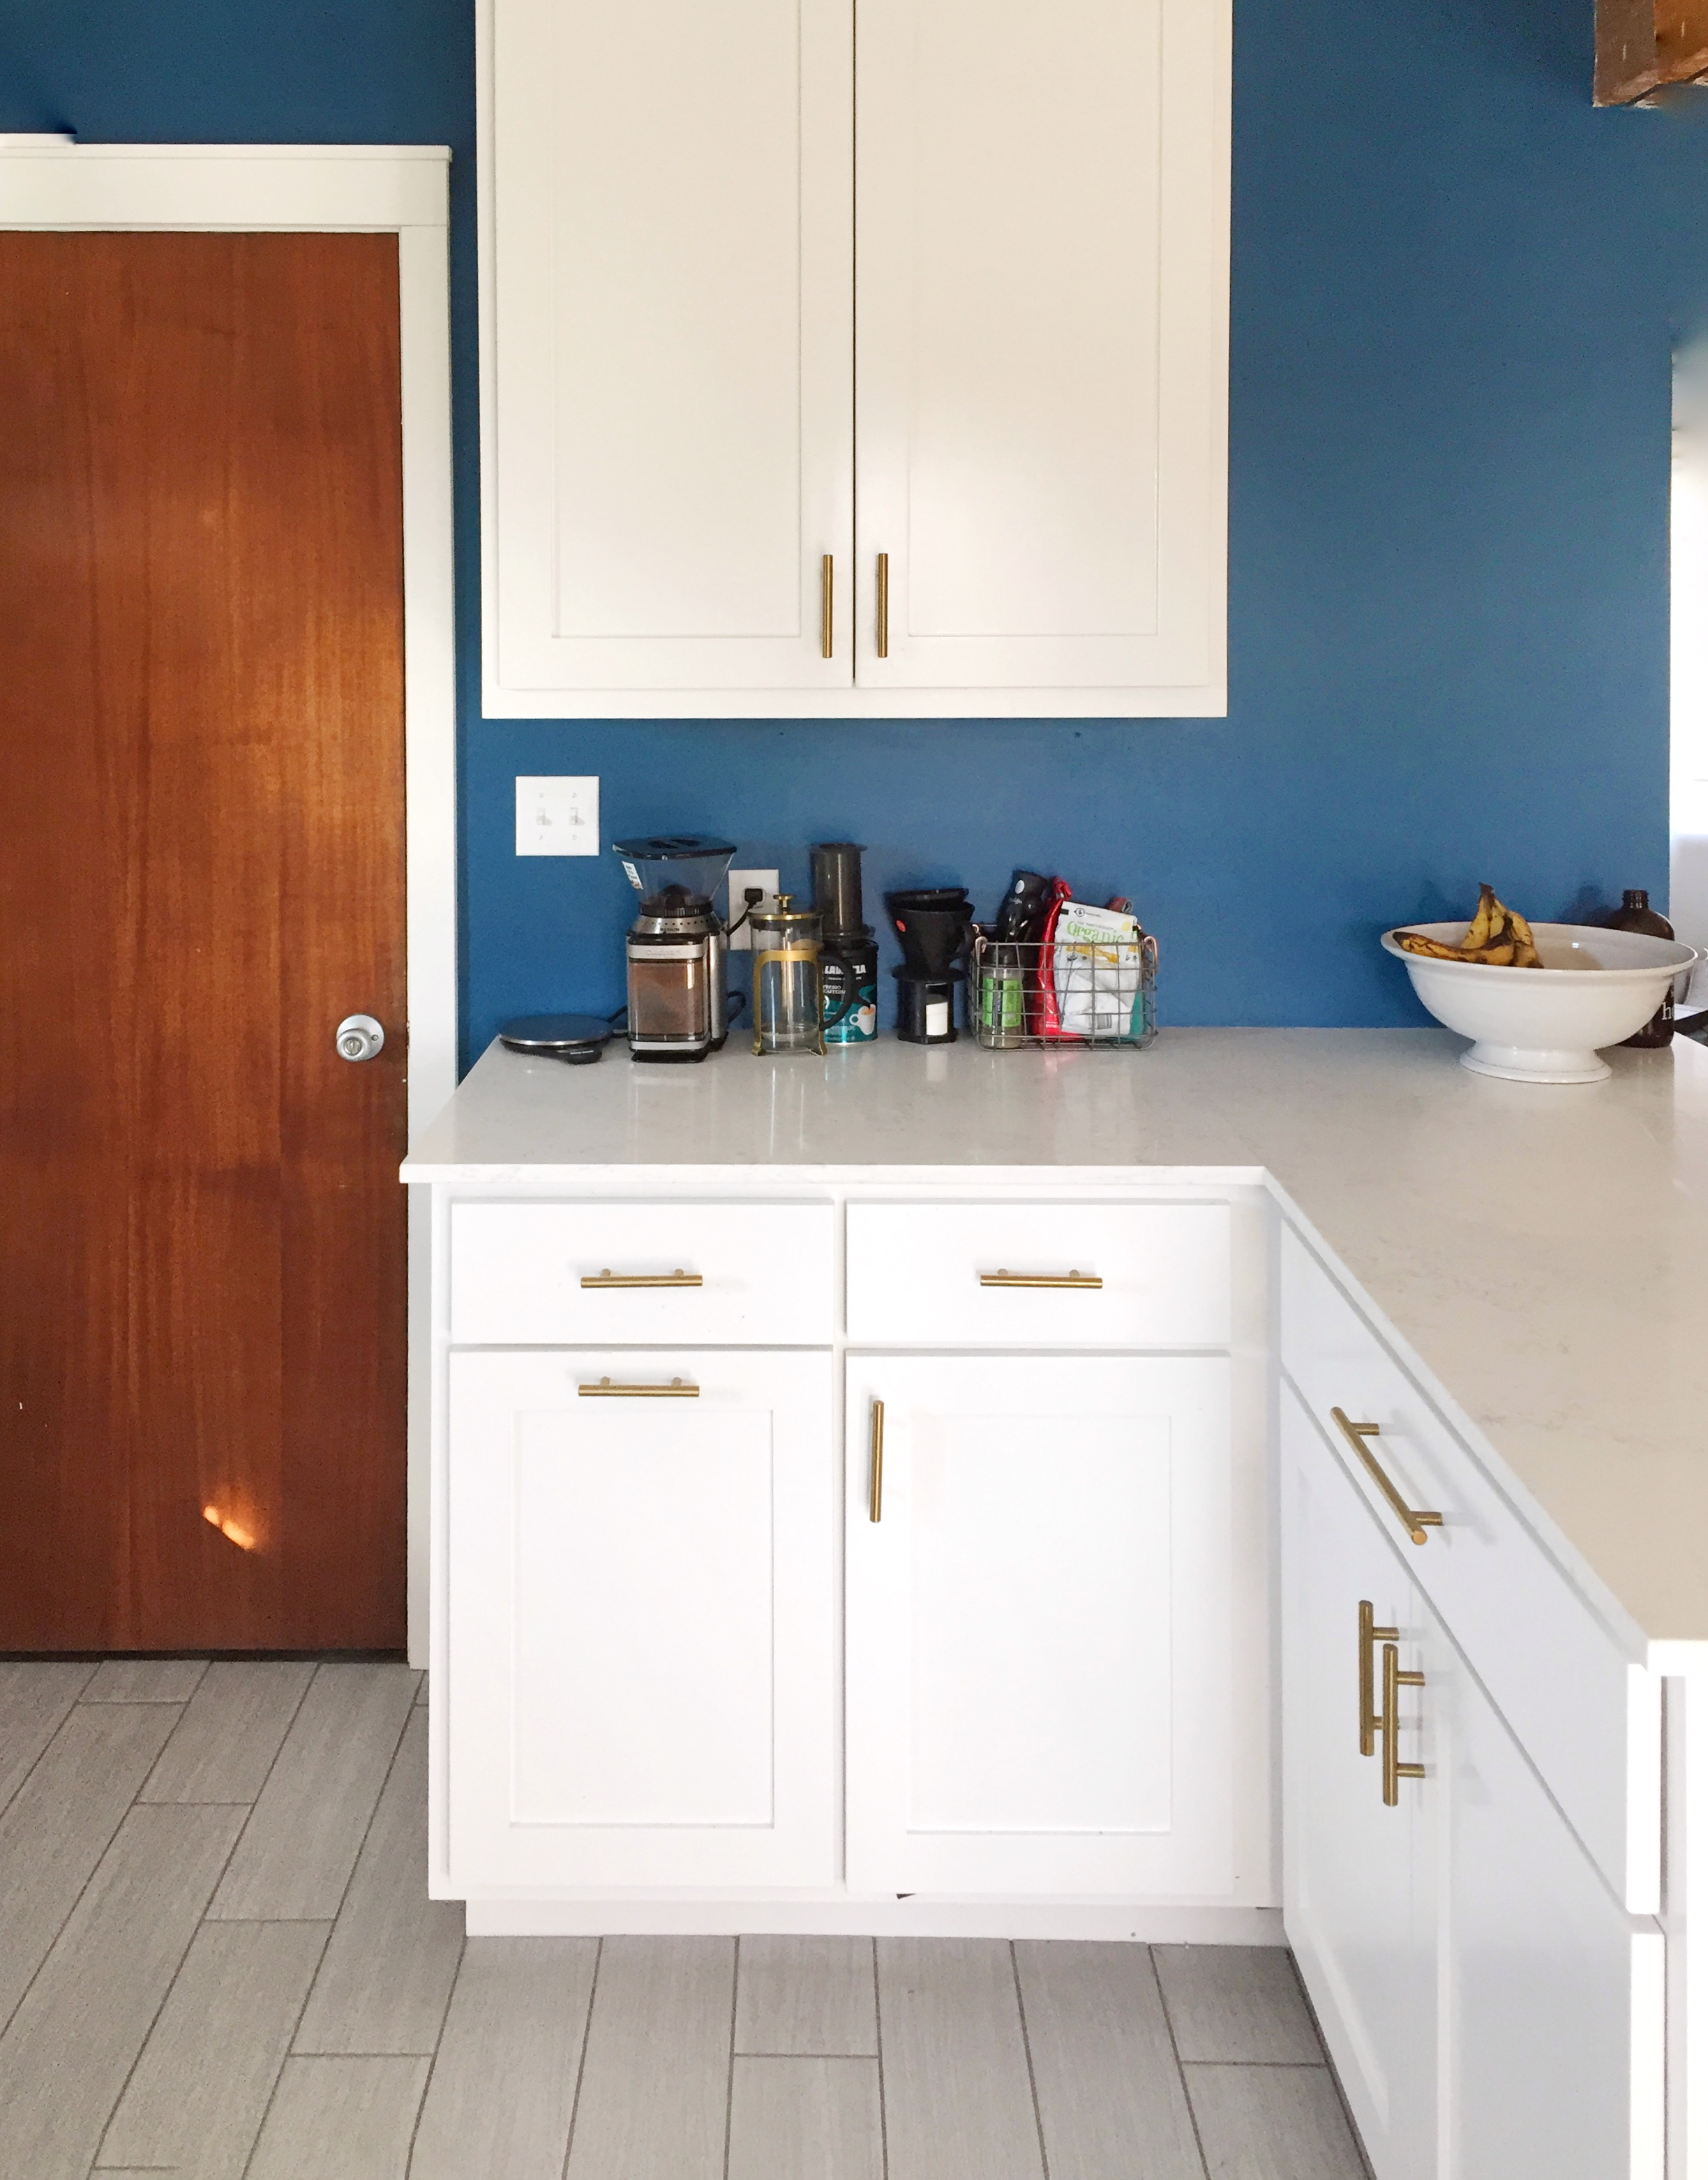 This area of cabinets is completely new…before, it was just a corner of walls